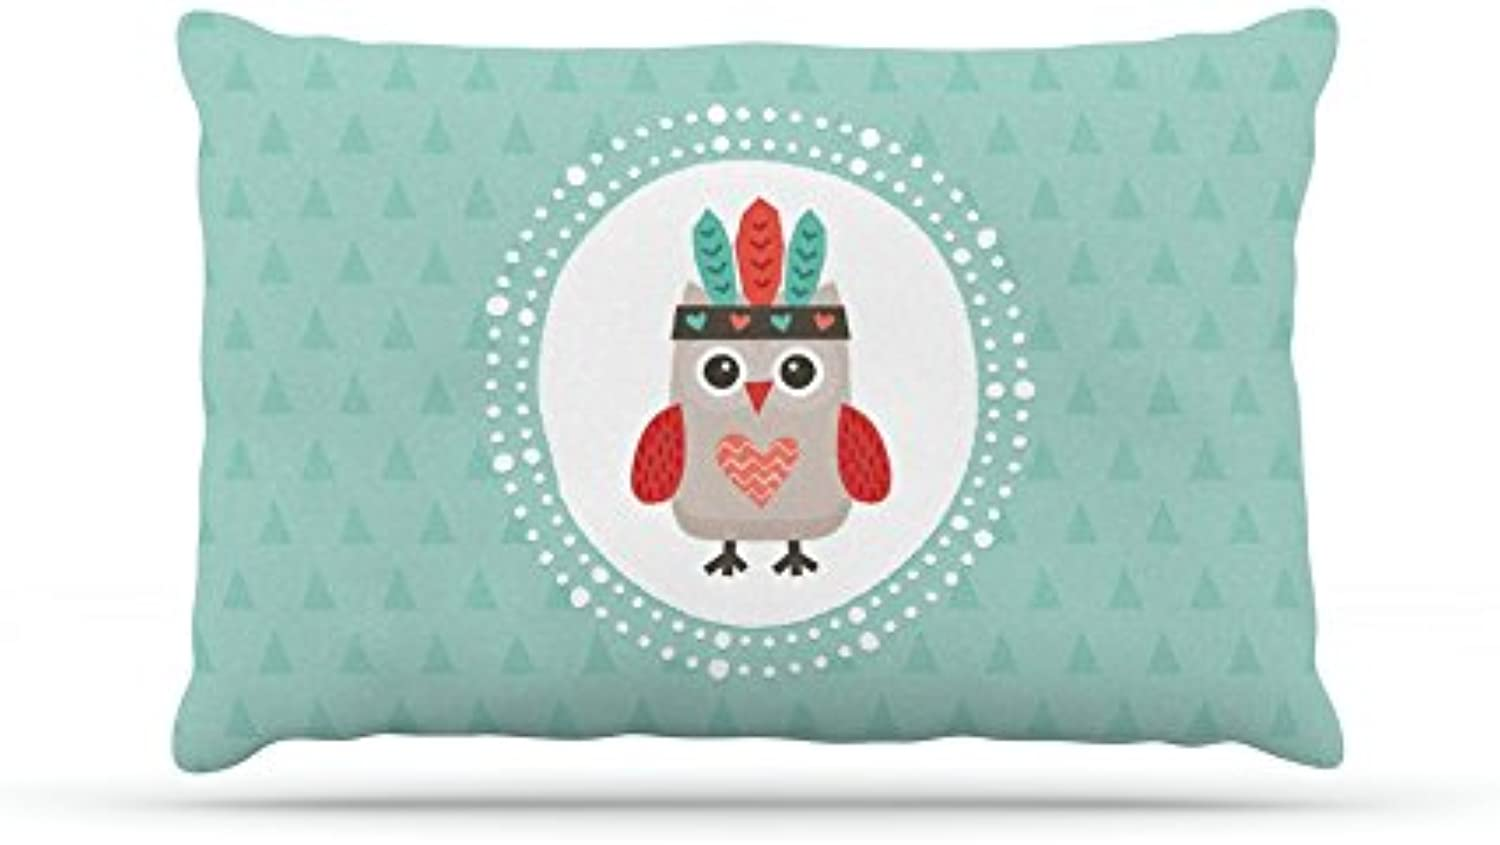 Kess InHouse Daisy Beatrice Hipster Owlet Mint Coral  Teal Fleece Dog Bed, 30 by 40